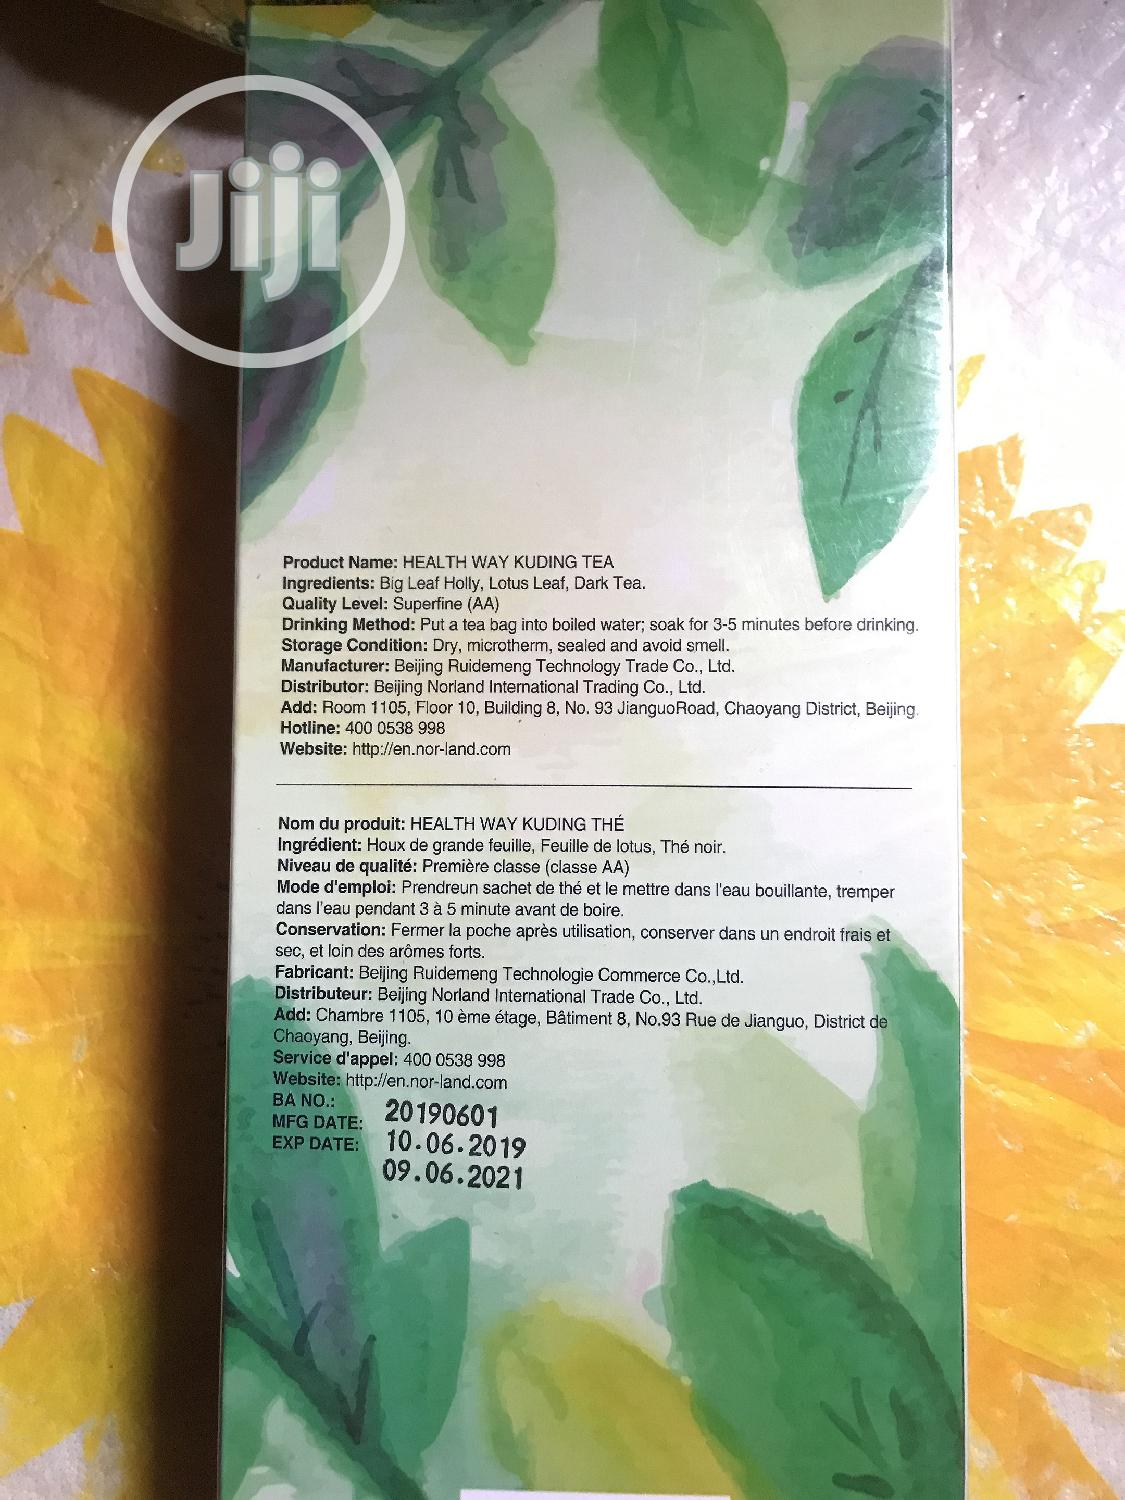 Archive: Norland Healthway Kuding Tea